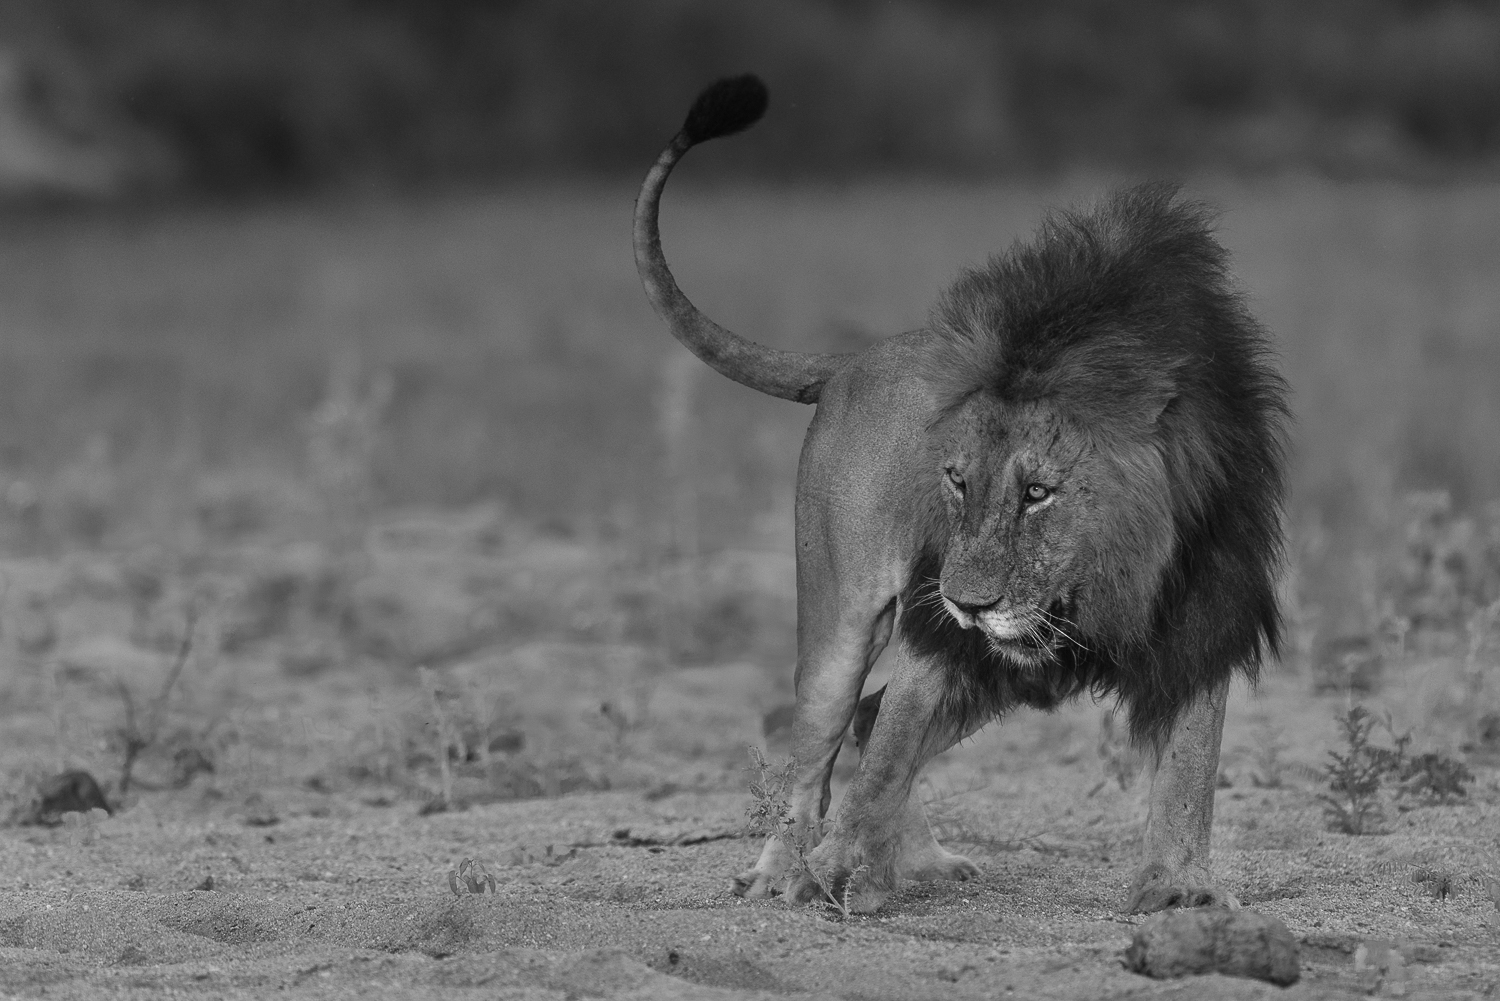 A hearty meal leaves just about renders a male lion useless, completely gorged sleep is priority number one. The dark mane Matimba a second before he flopped over and drifted off.